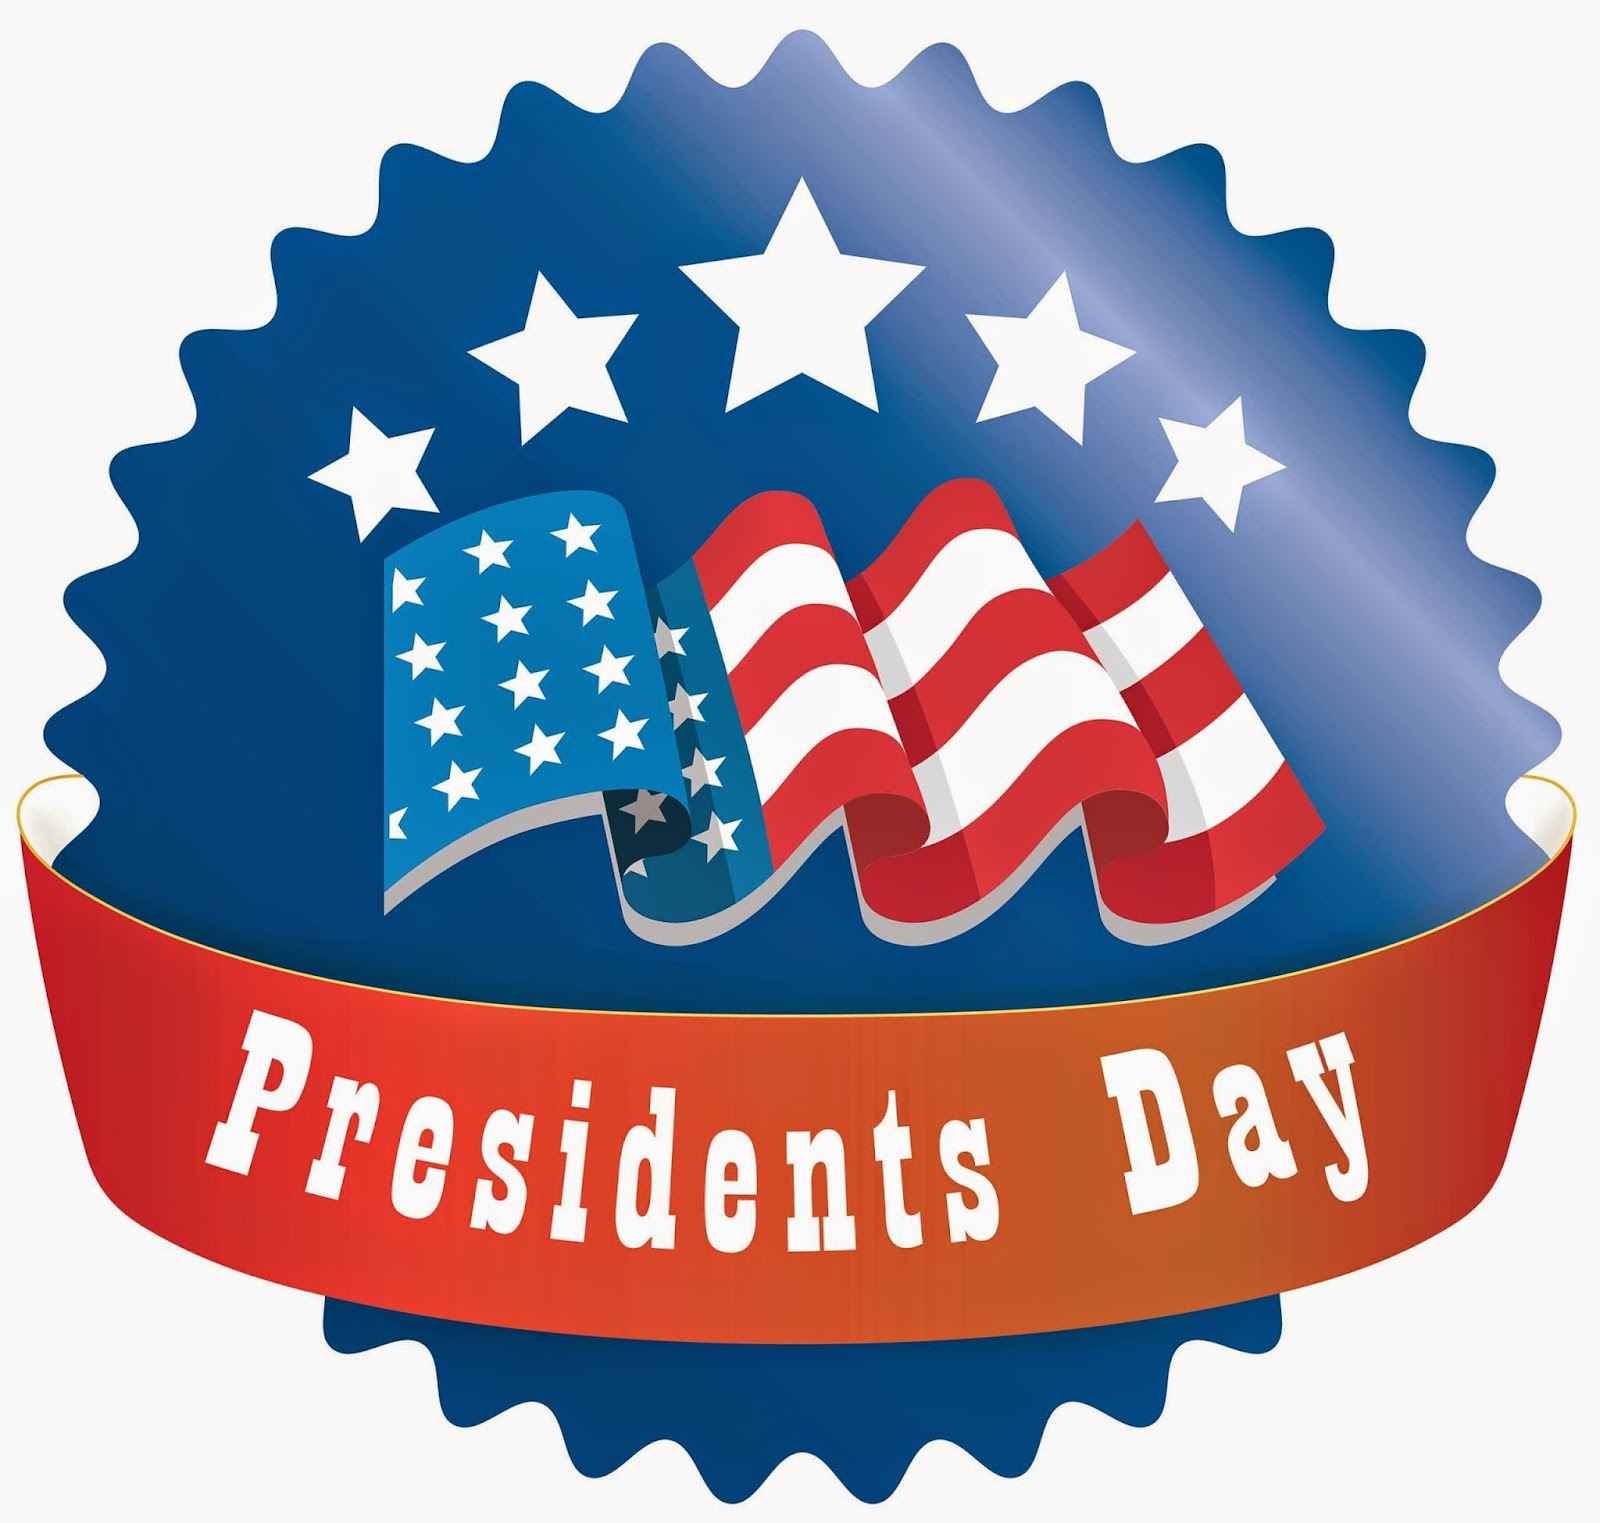 Clip Art. Presidents Day Clip Art. Drupload.com Free Clipart And.